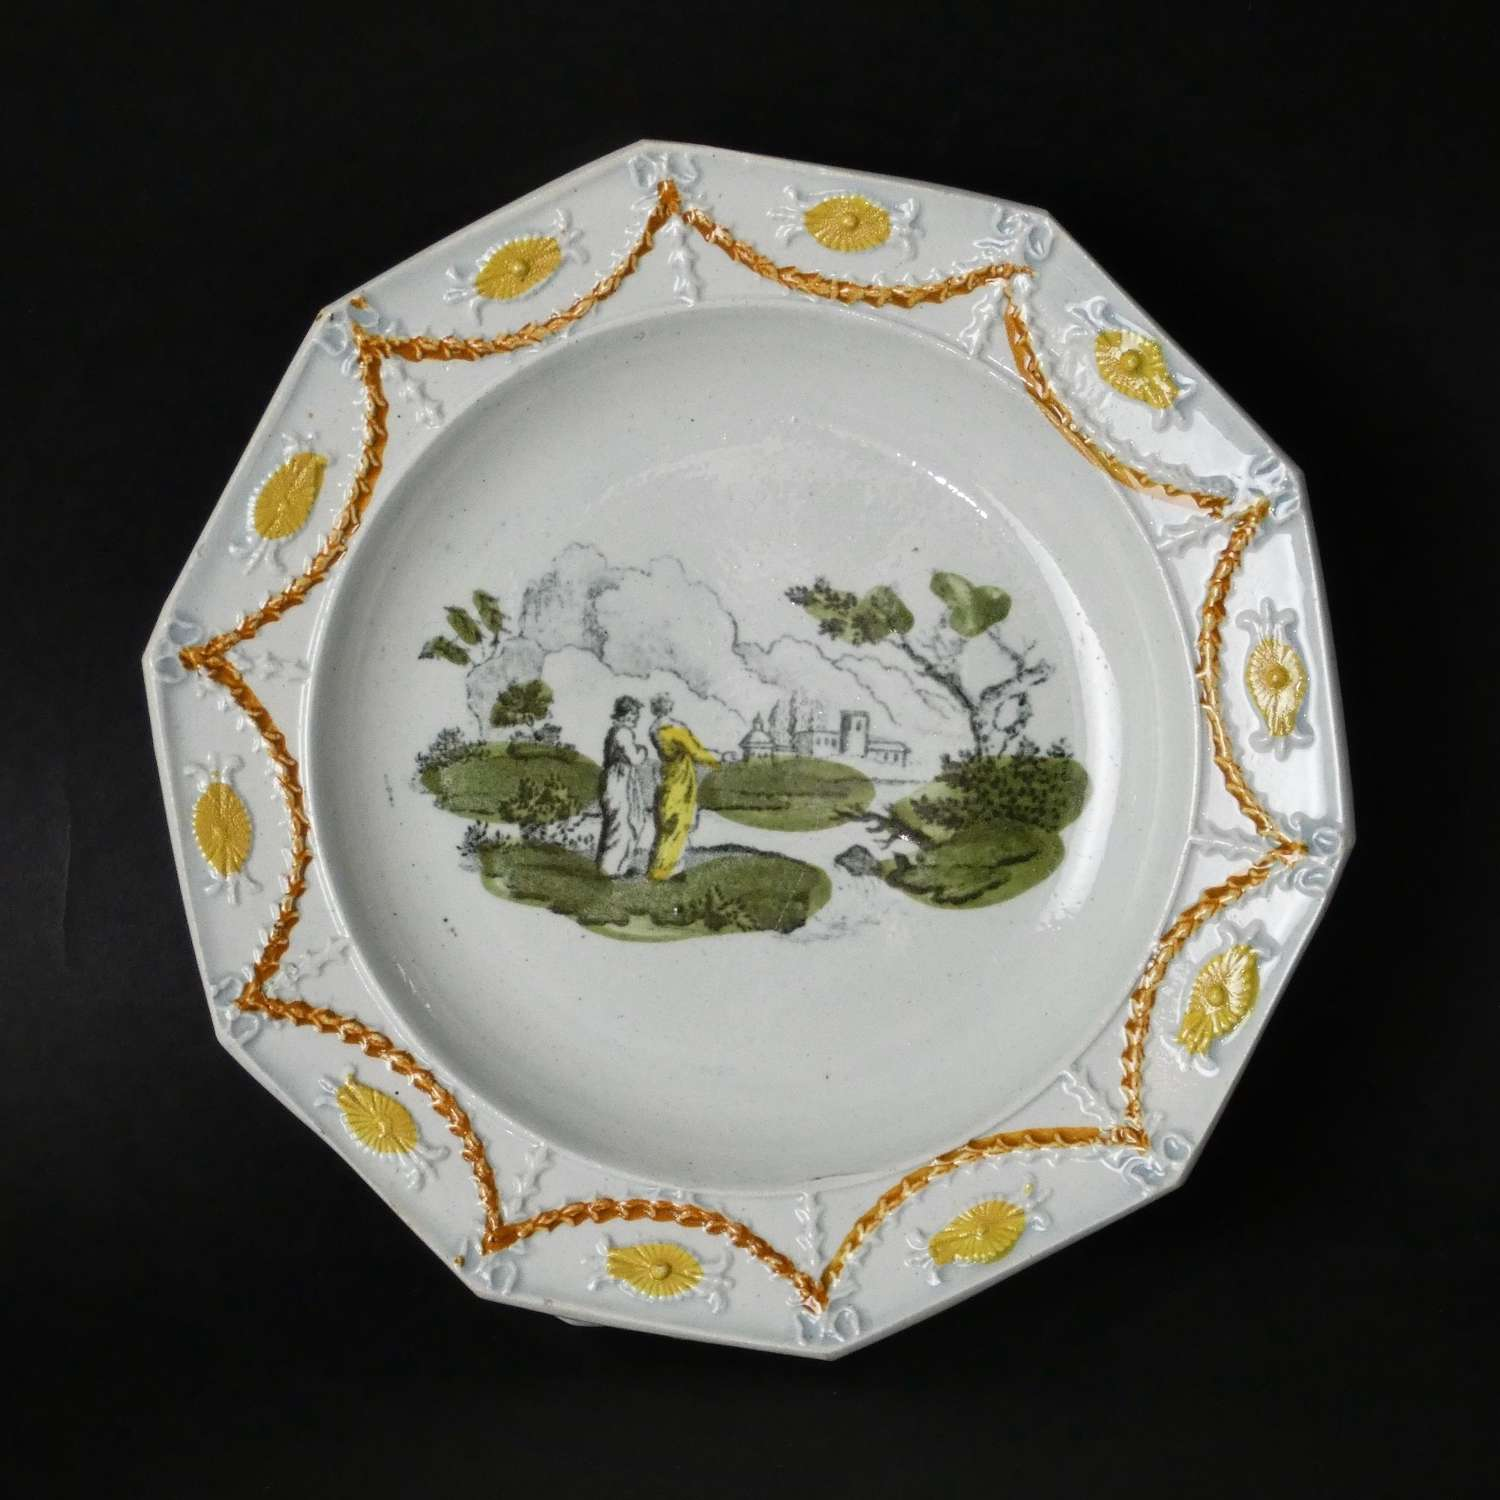 Fine quality pearlware child's plate